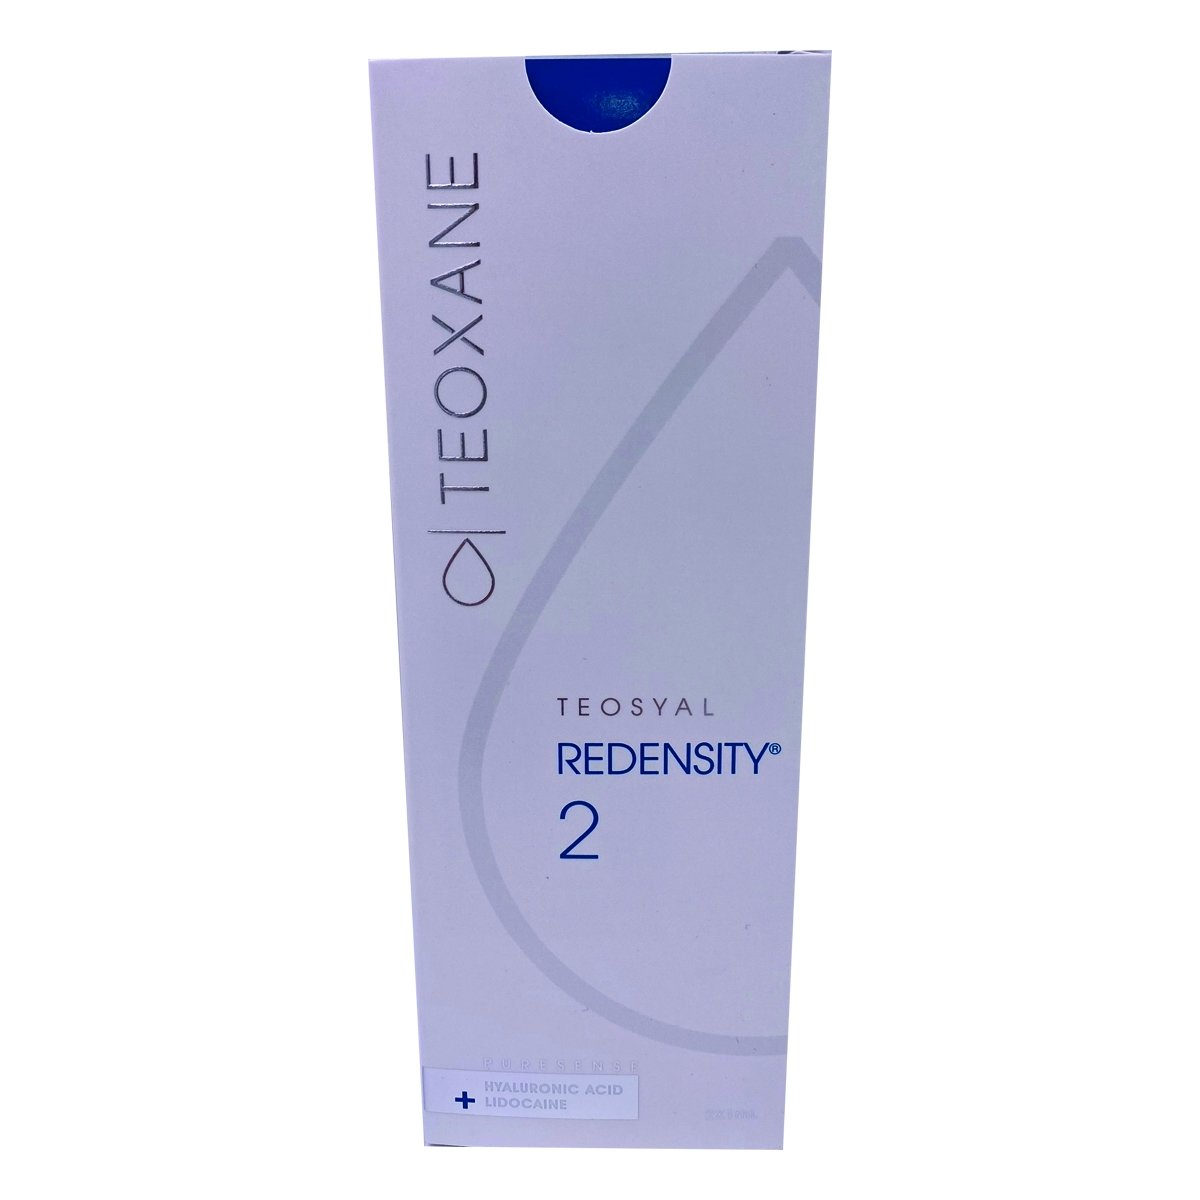 Teoxane Laboratoires - Teosyal Fill Redensity II lidocaïne - 2 x 1 ml